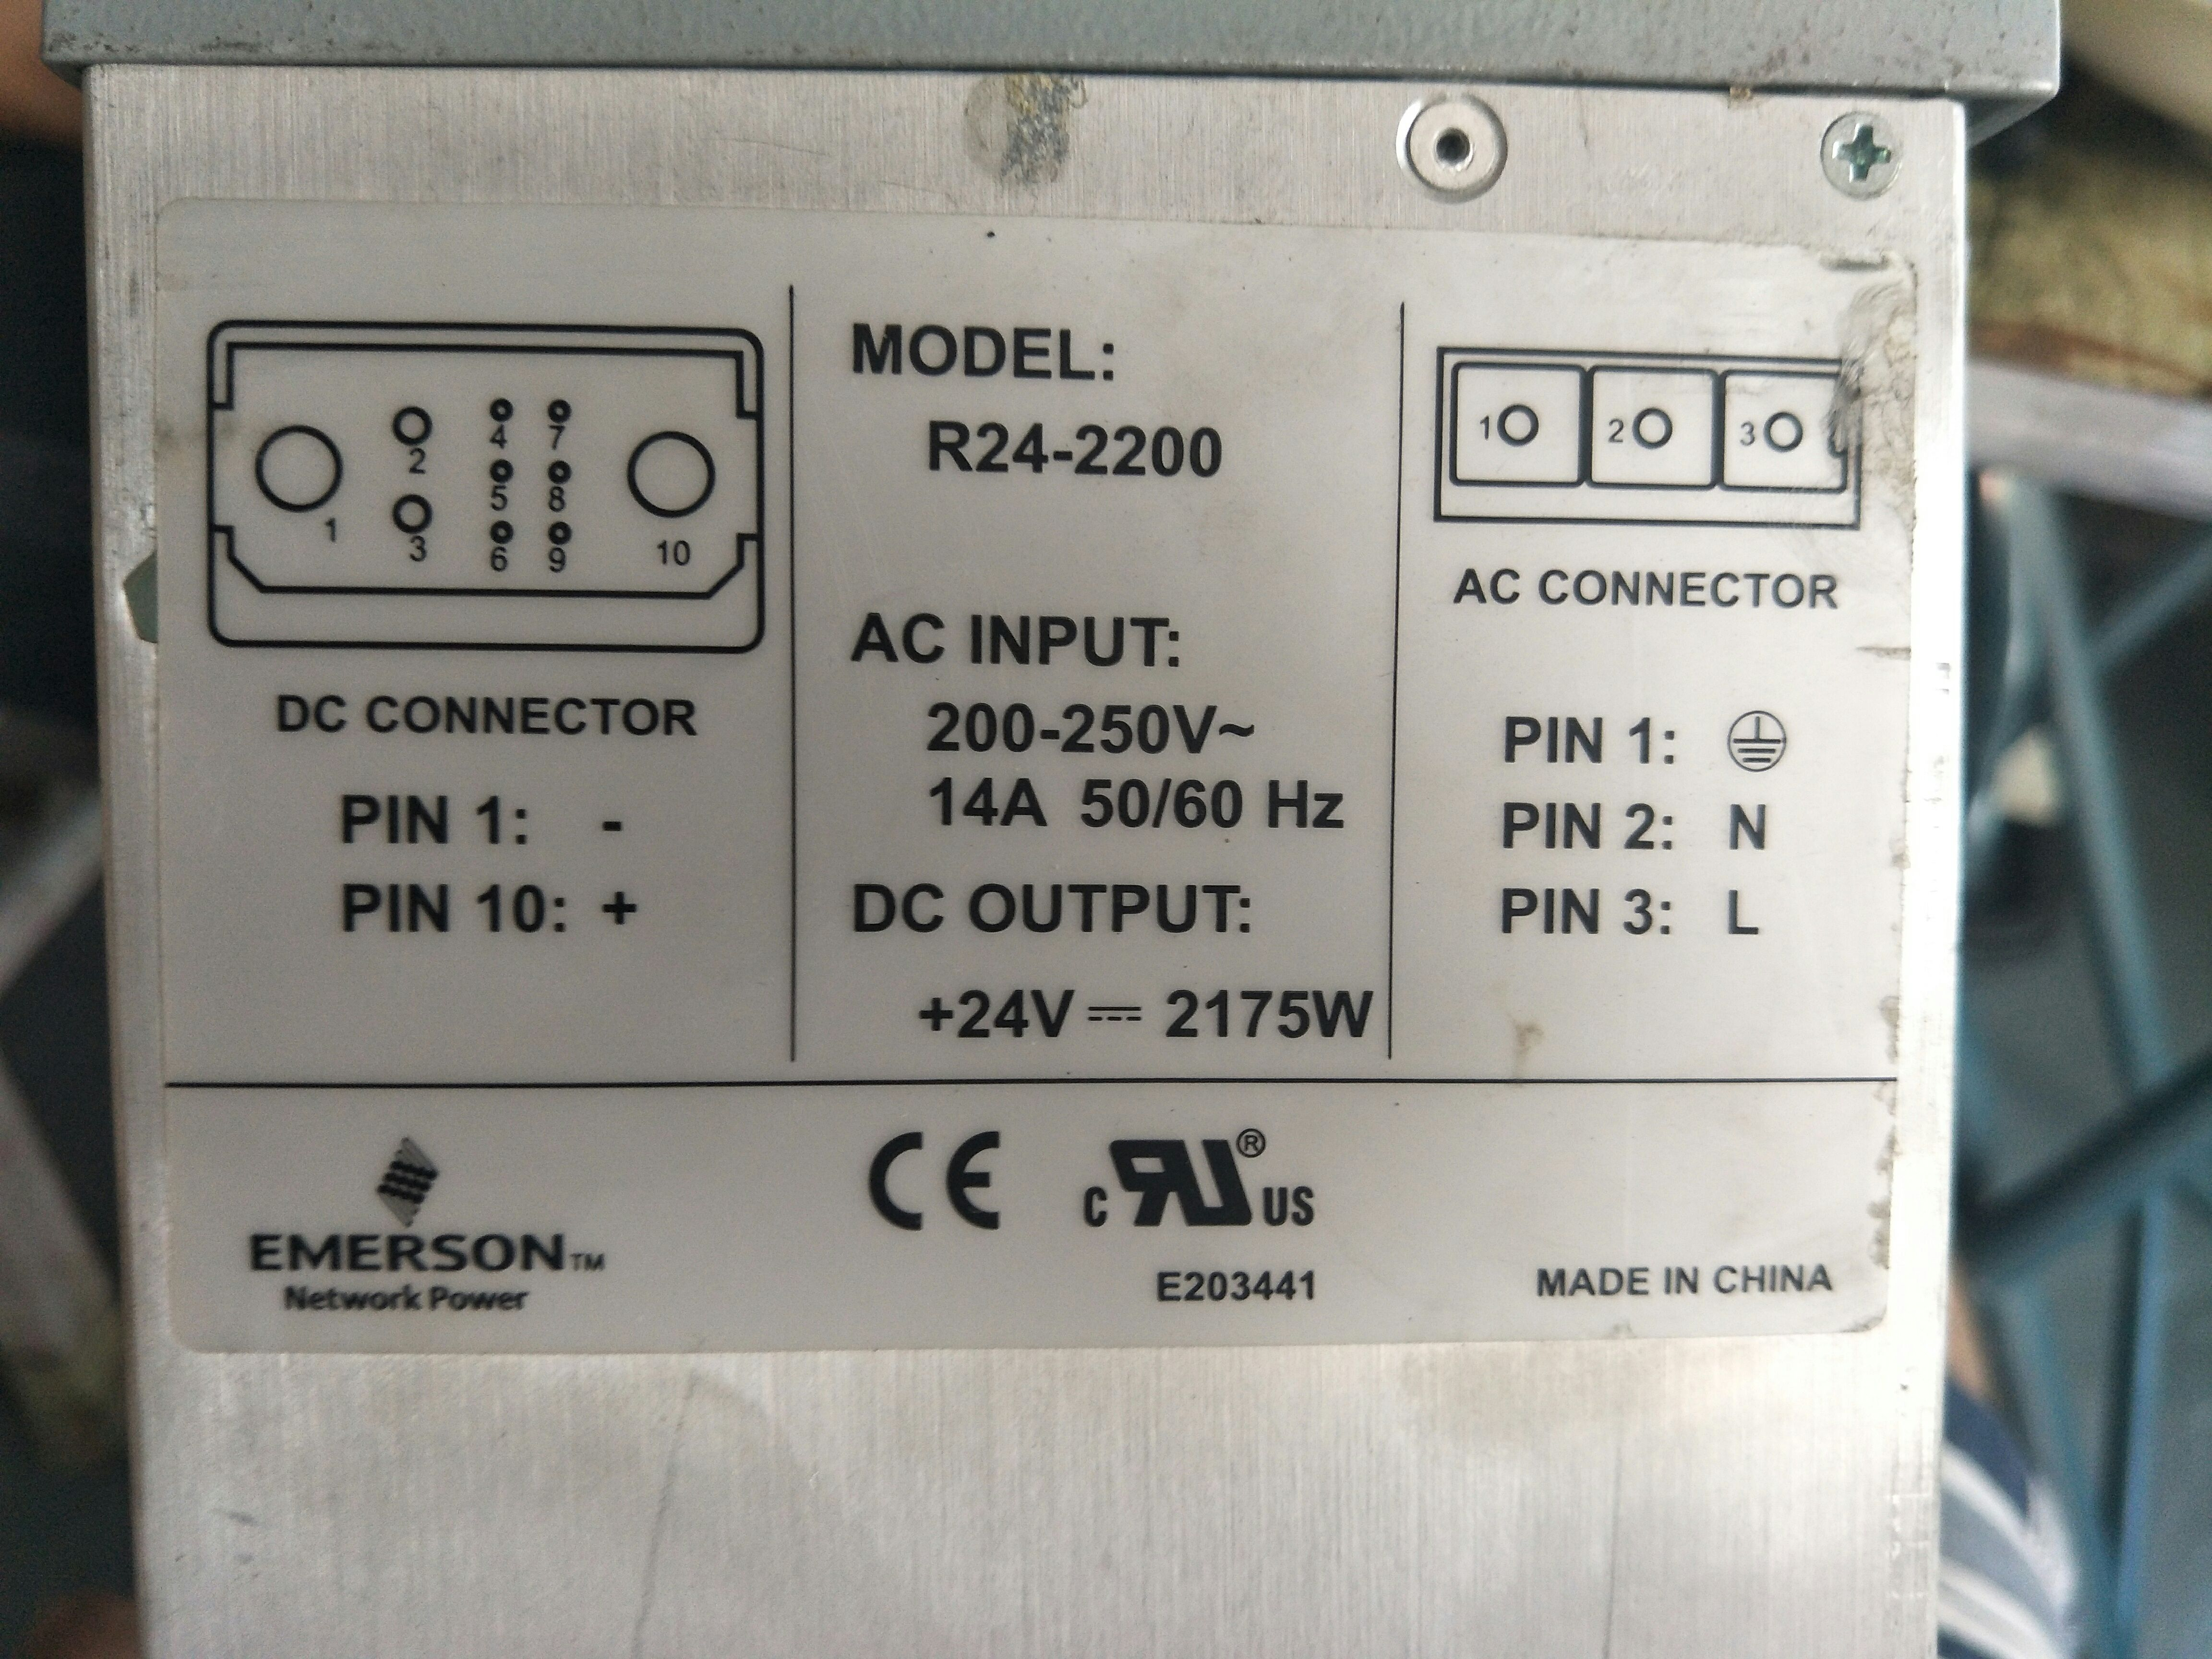 Emerson R24-2200 power module is recycled